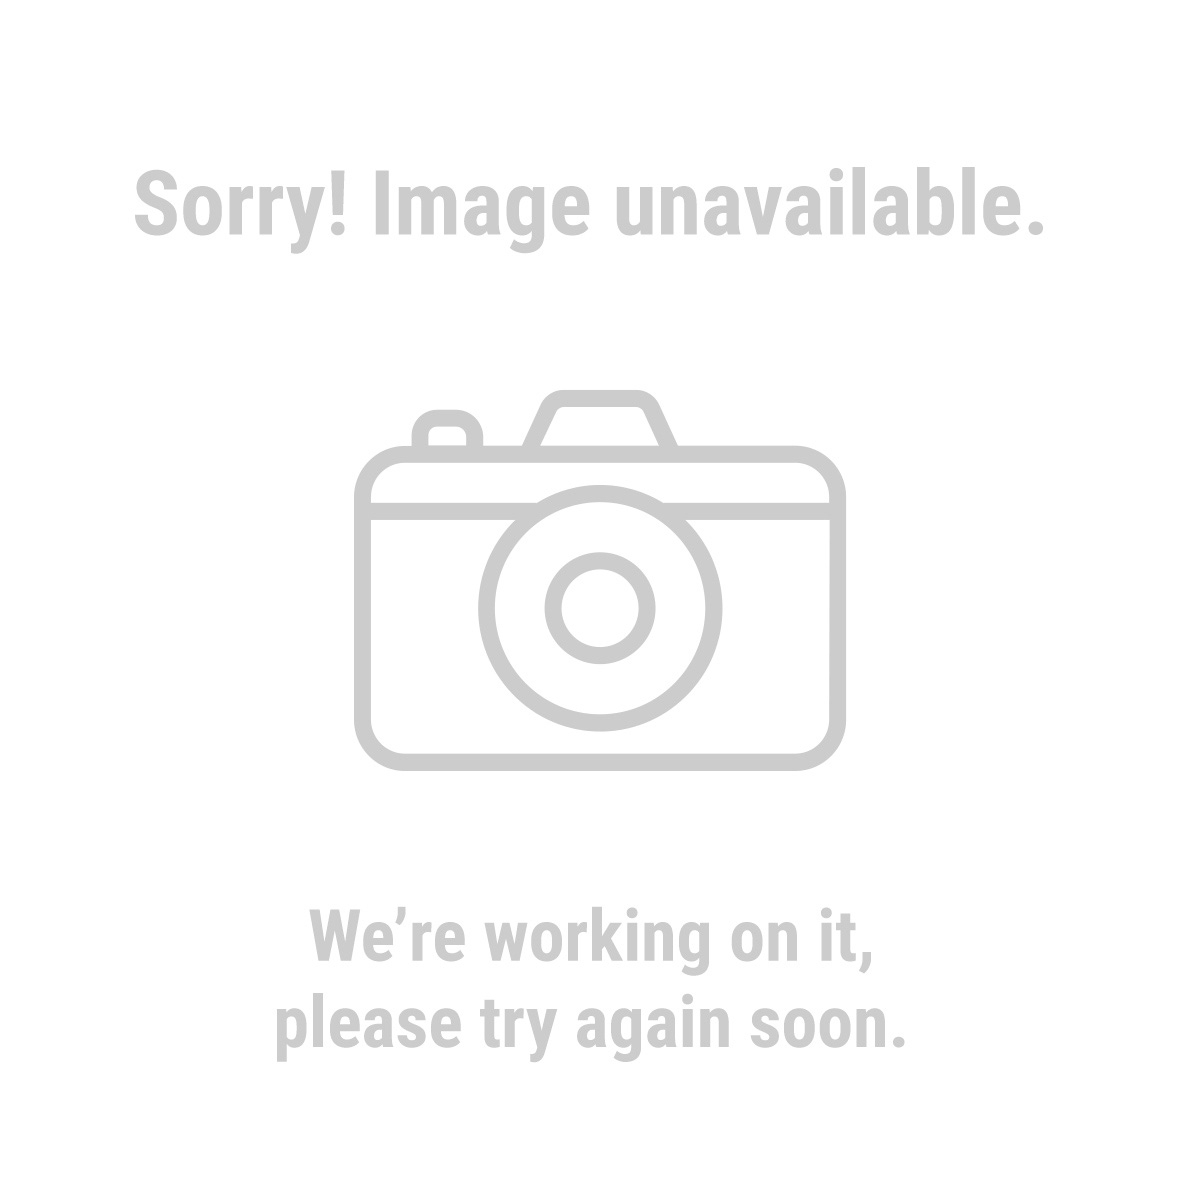 Pittsburgh 93789 Pack of 10 Mini Utility Blades